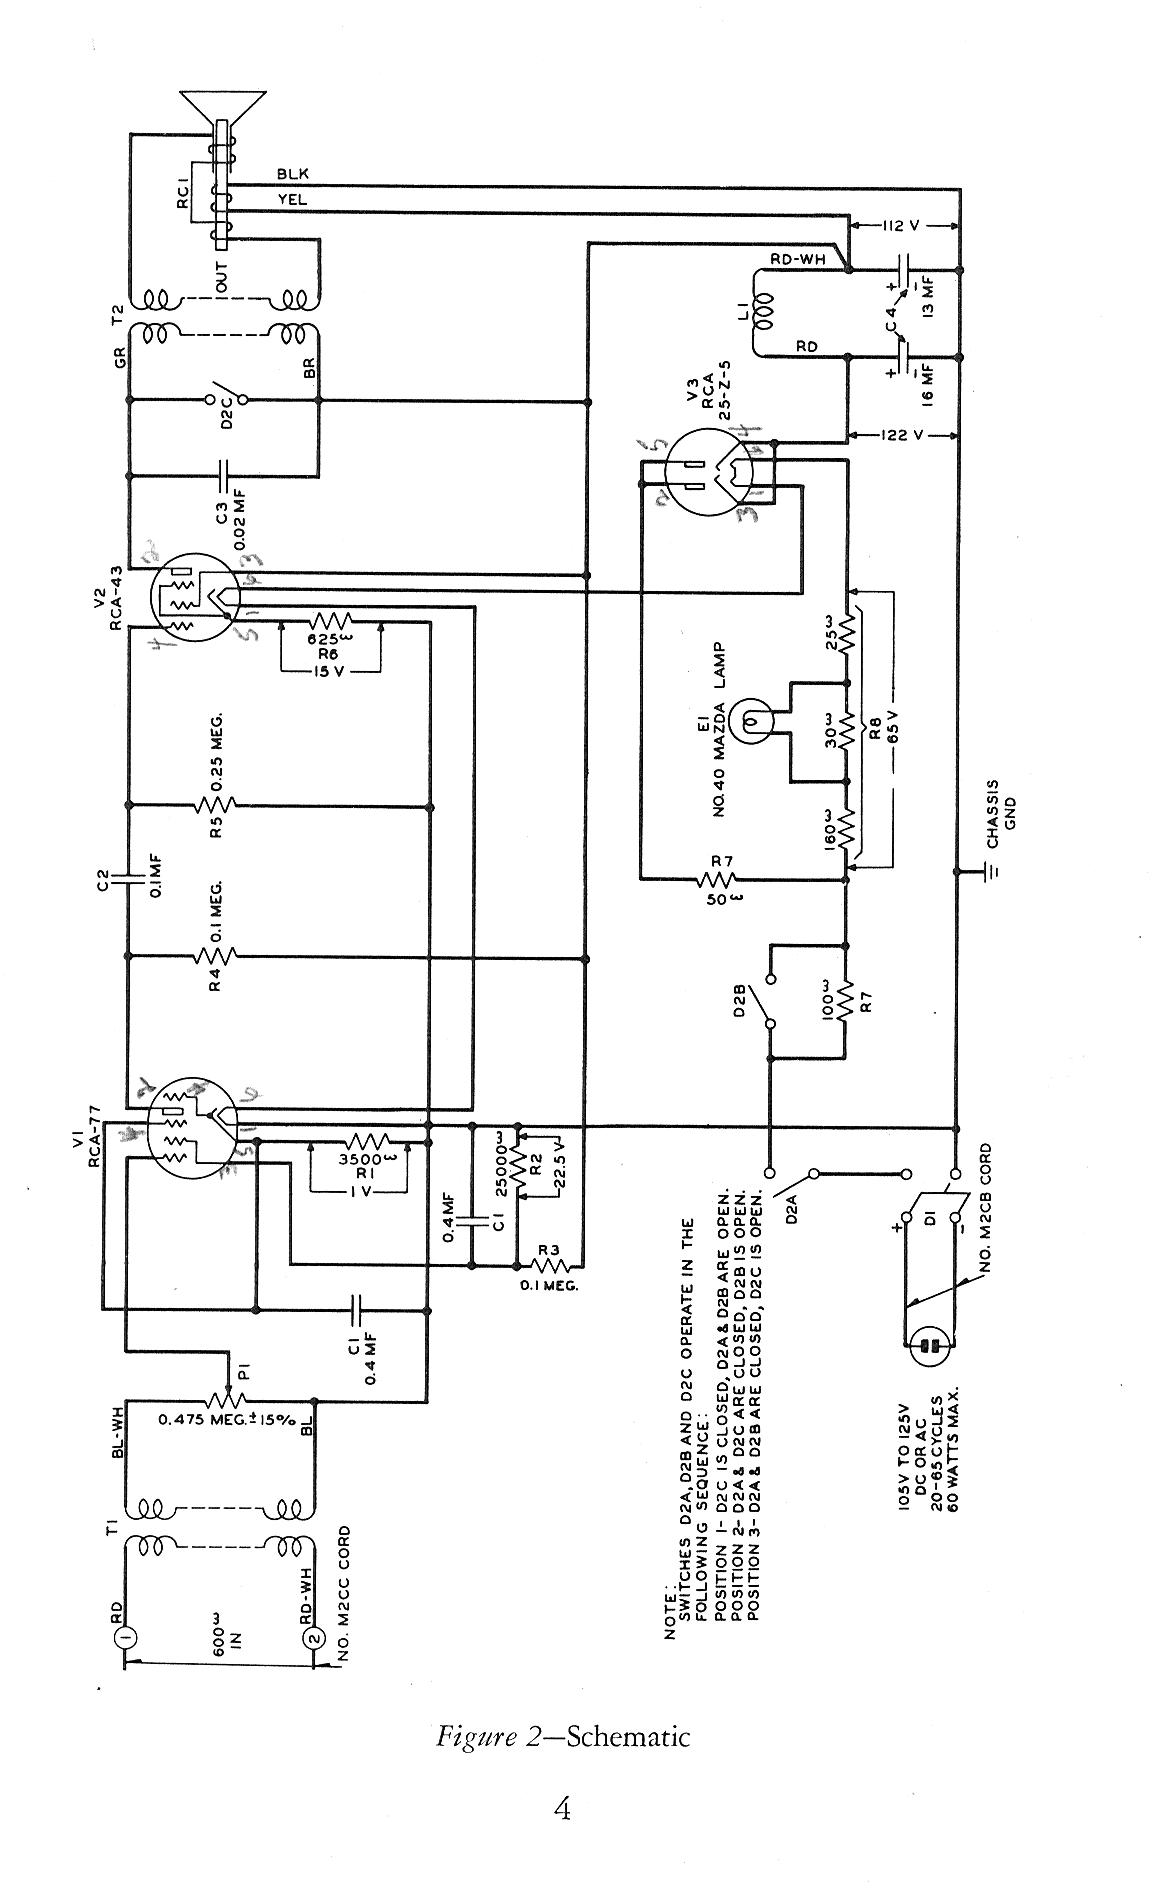 Western Electric 2500 Wiring Diagram : 36 Wiring Diagram